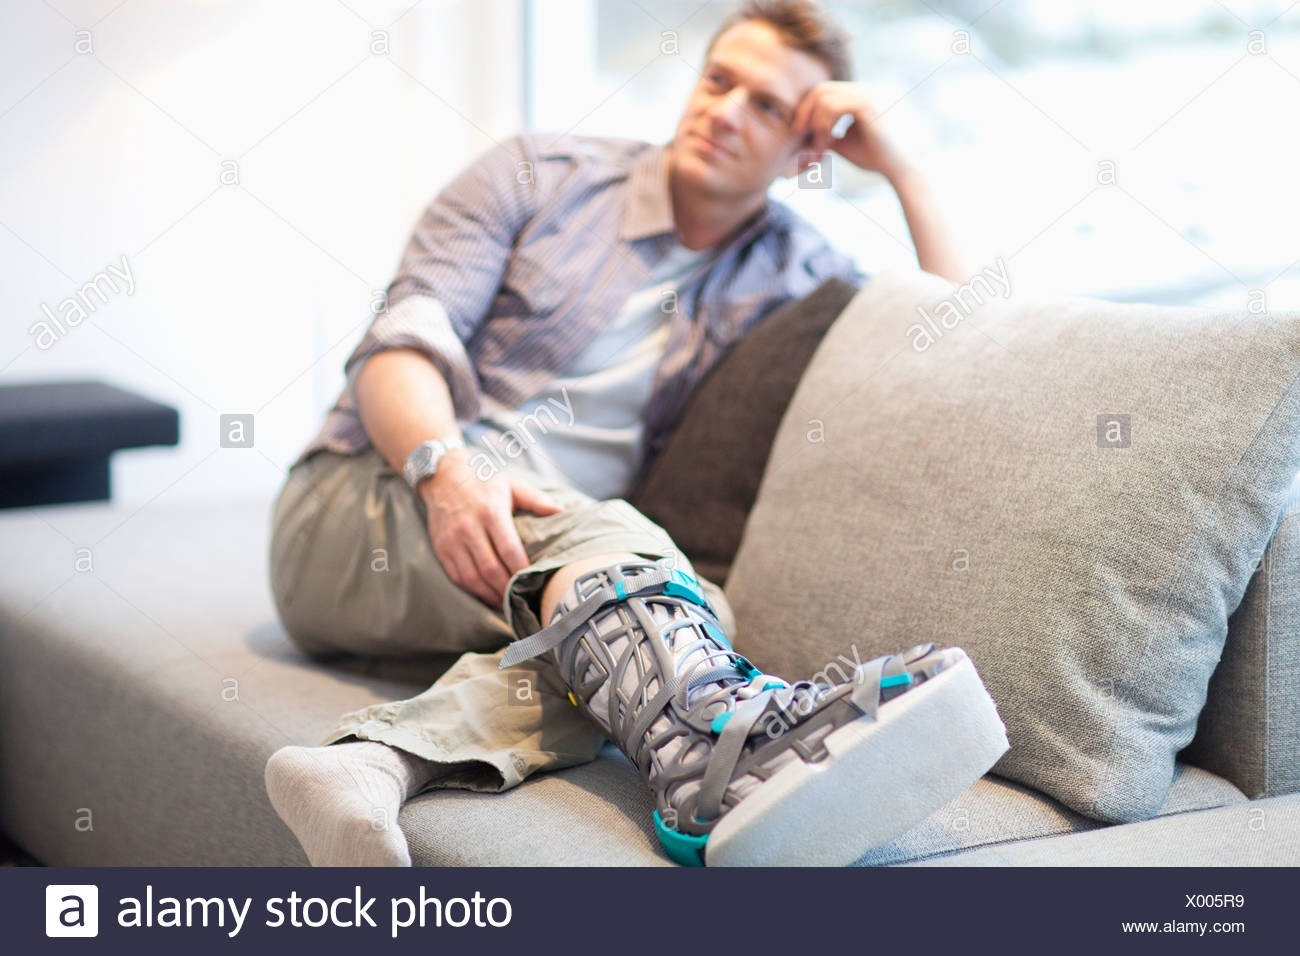 Mid adult man in foot brace relaxing on sofa - Stock Image